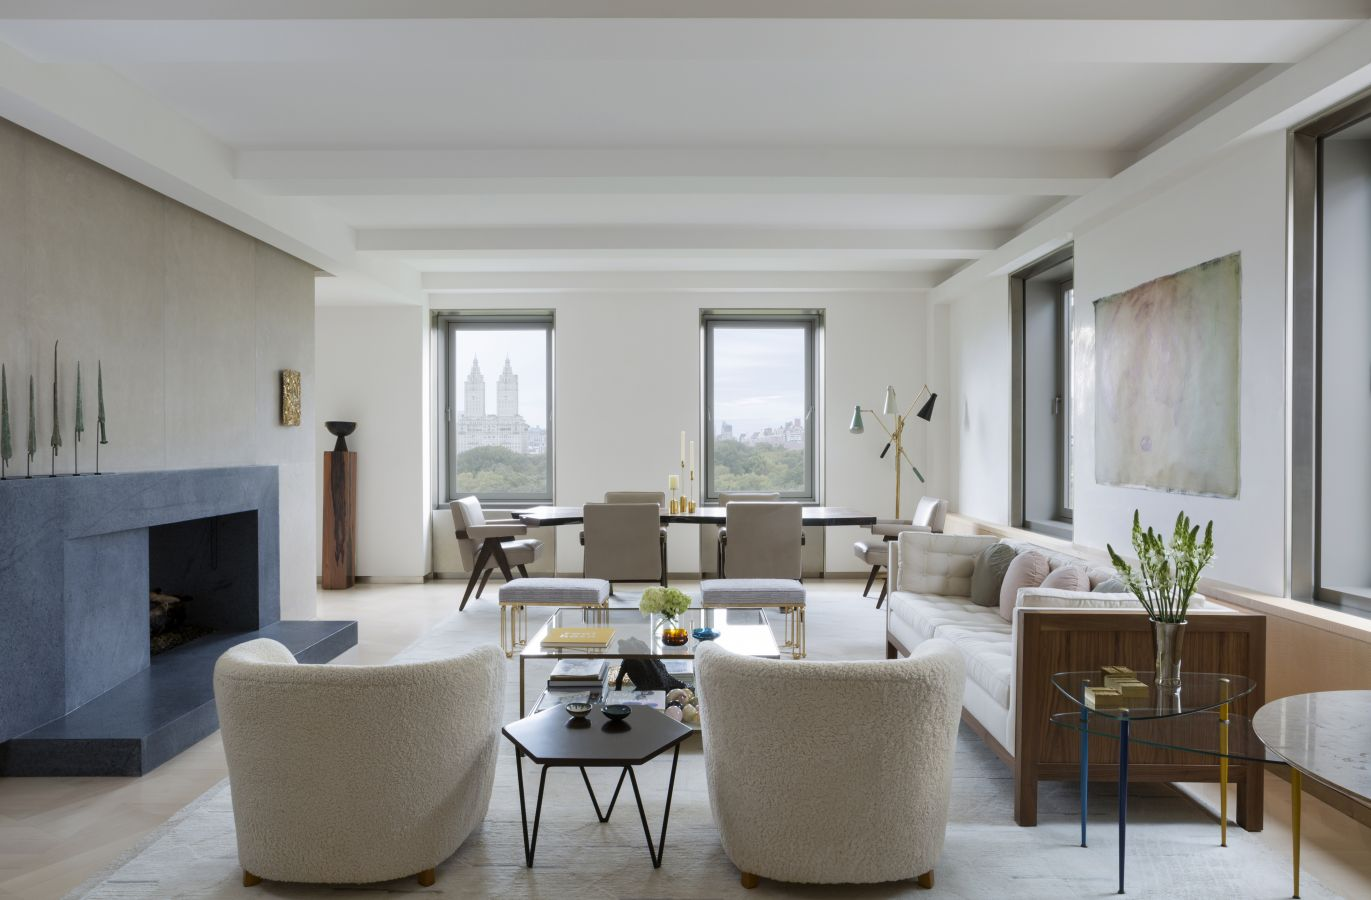 BRYAN O'SULLIVAN STUDIO | With maximum views of the park, this Fifth Avenue Apartment by Irish designer Bryan O'Sullivan is the ultimate exercise in restraint, emphasised by the muted, harmonious colour palette throughout | image via BOSS STUDIO    LINK HERE >>>